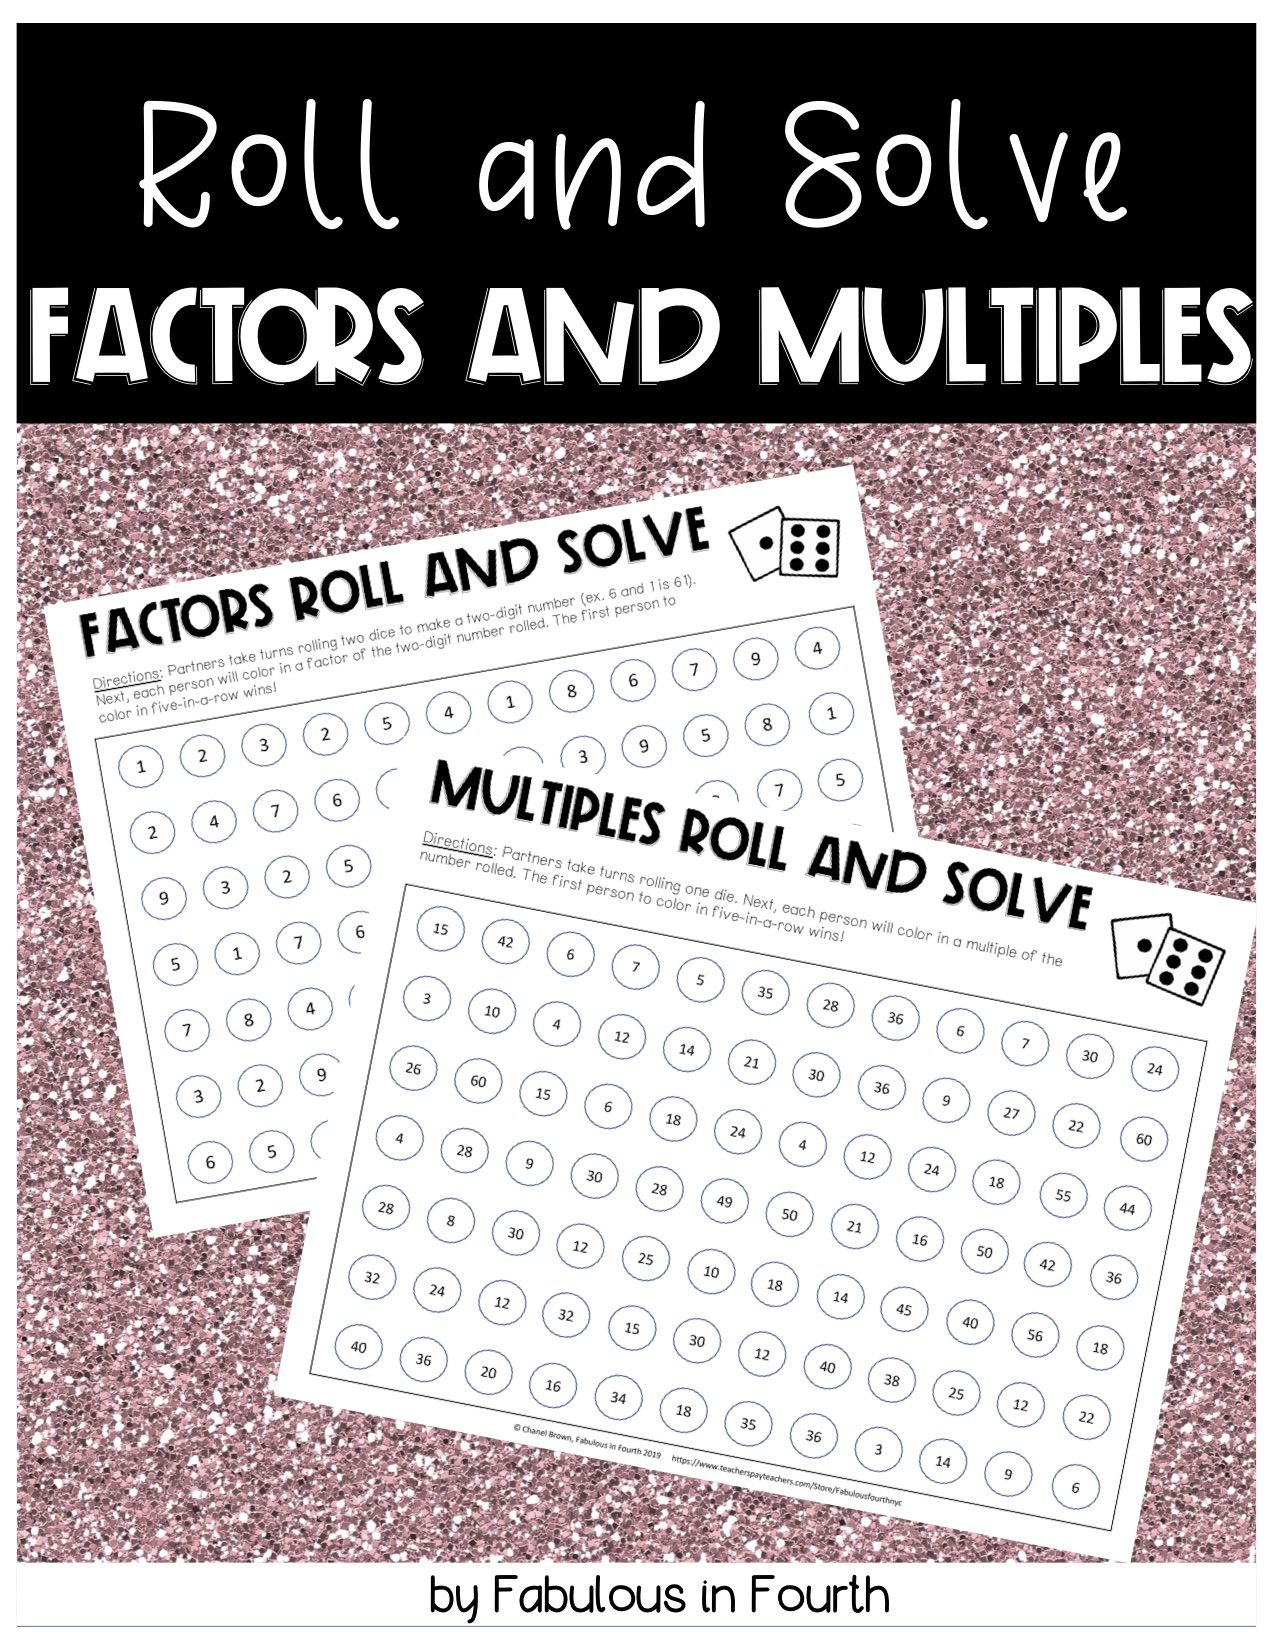 Factors And Multiples Roll And Solve Game 4 Oa 4